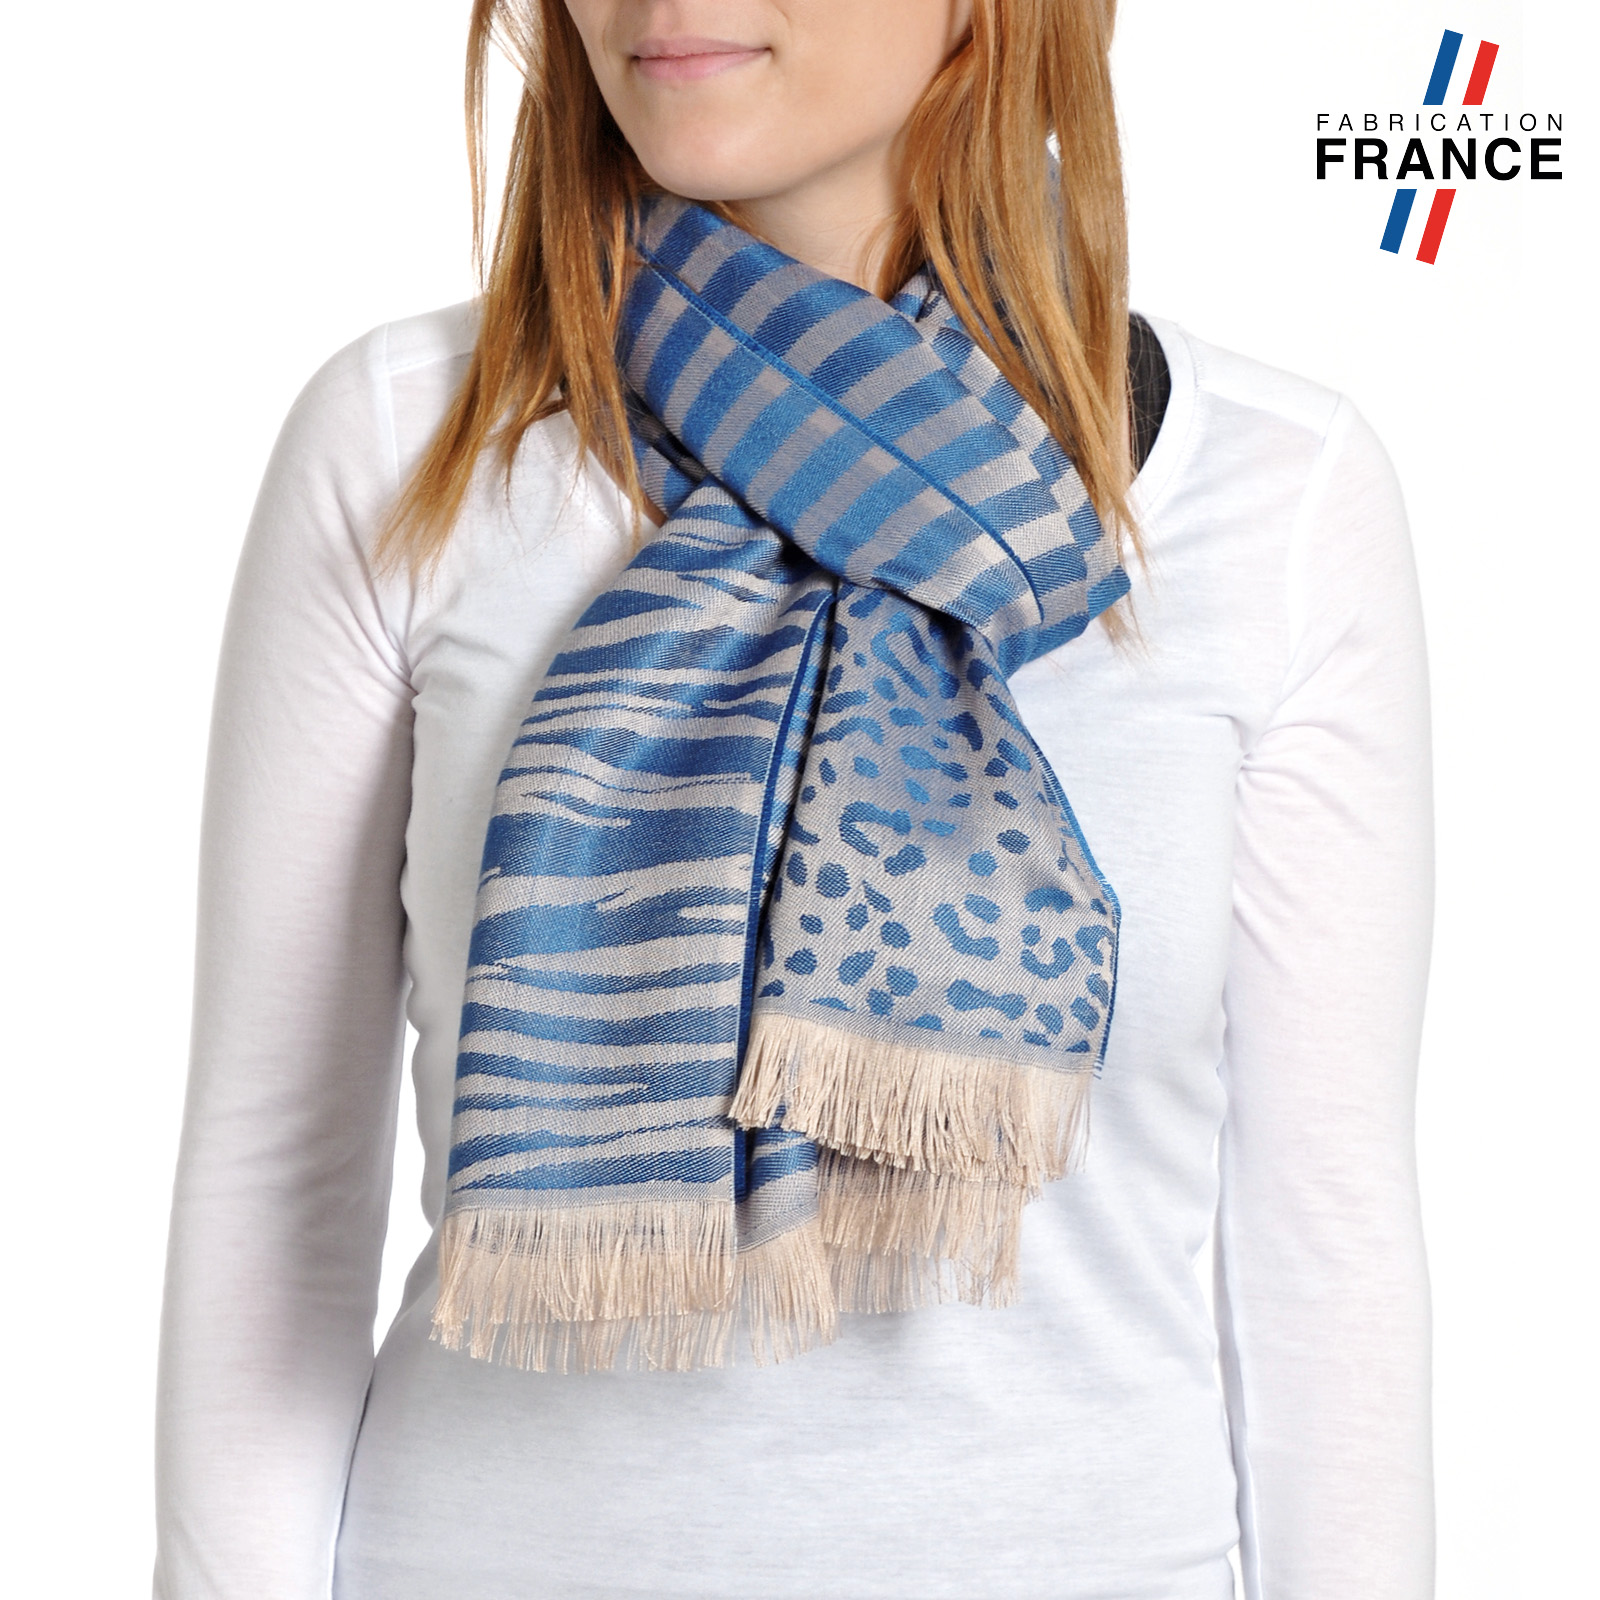 AT-04255-VF16-P-LB_FR-echarpe-legere-paillettes-bleu-qualicoq